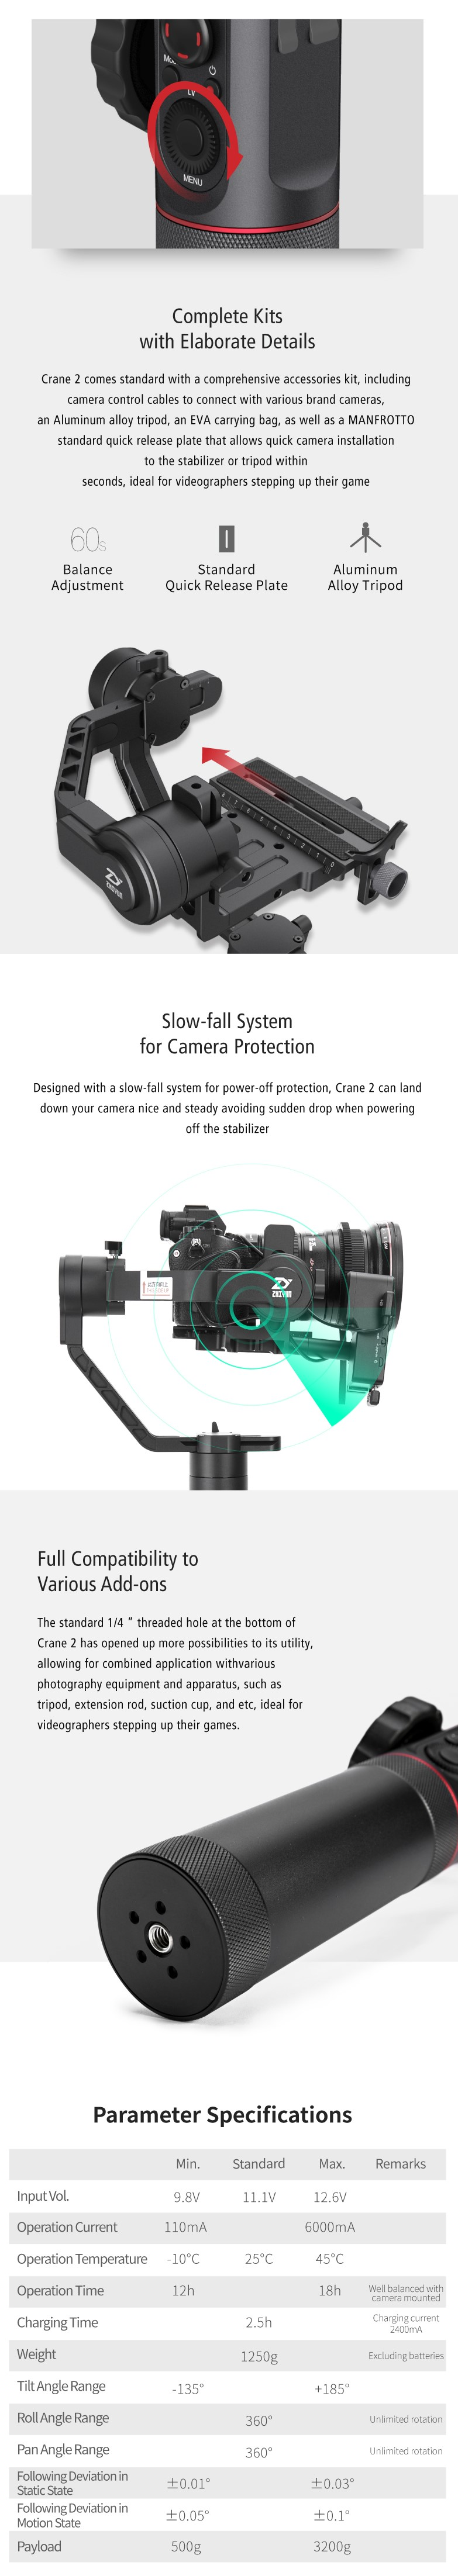 Zhiyun Crane 2(Servo Follow Focus Included)3-Axis Handheld Gimbal Stabilizer Wireless Remote 7lb Payload Display 18H Runtime2